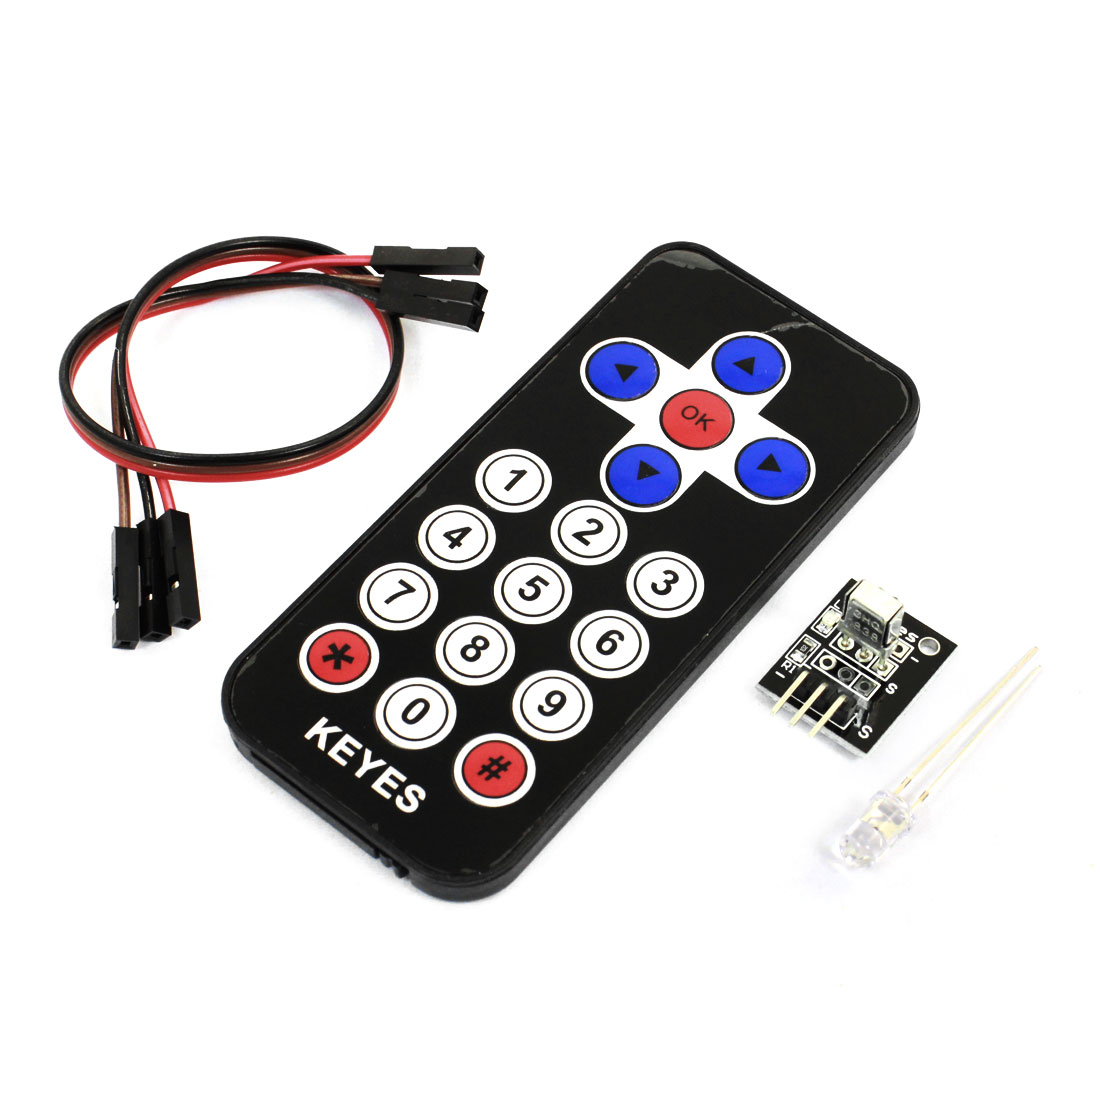 8M Distance Infrared Wireless Remote Control Kits for Arduino DIY Project